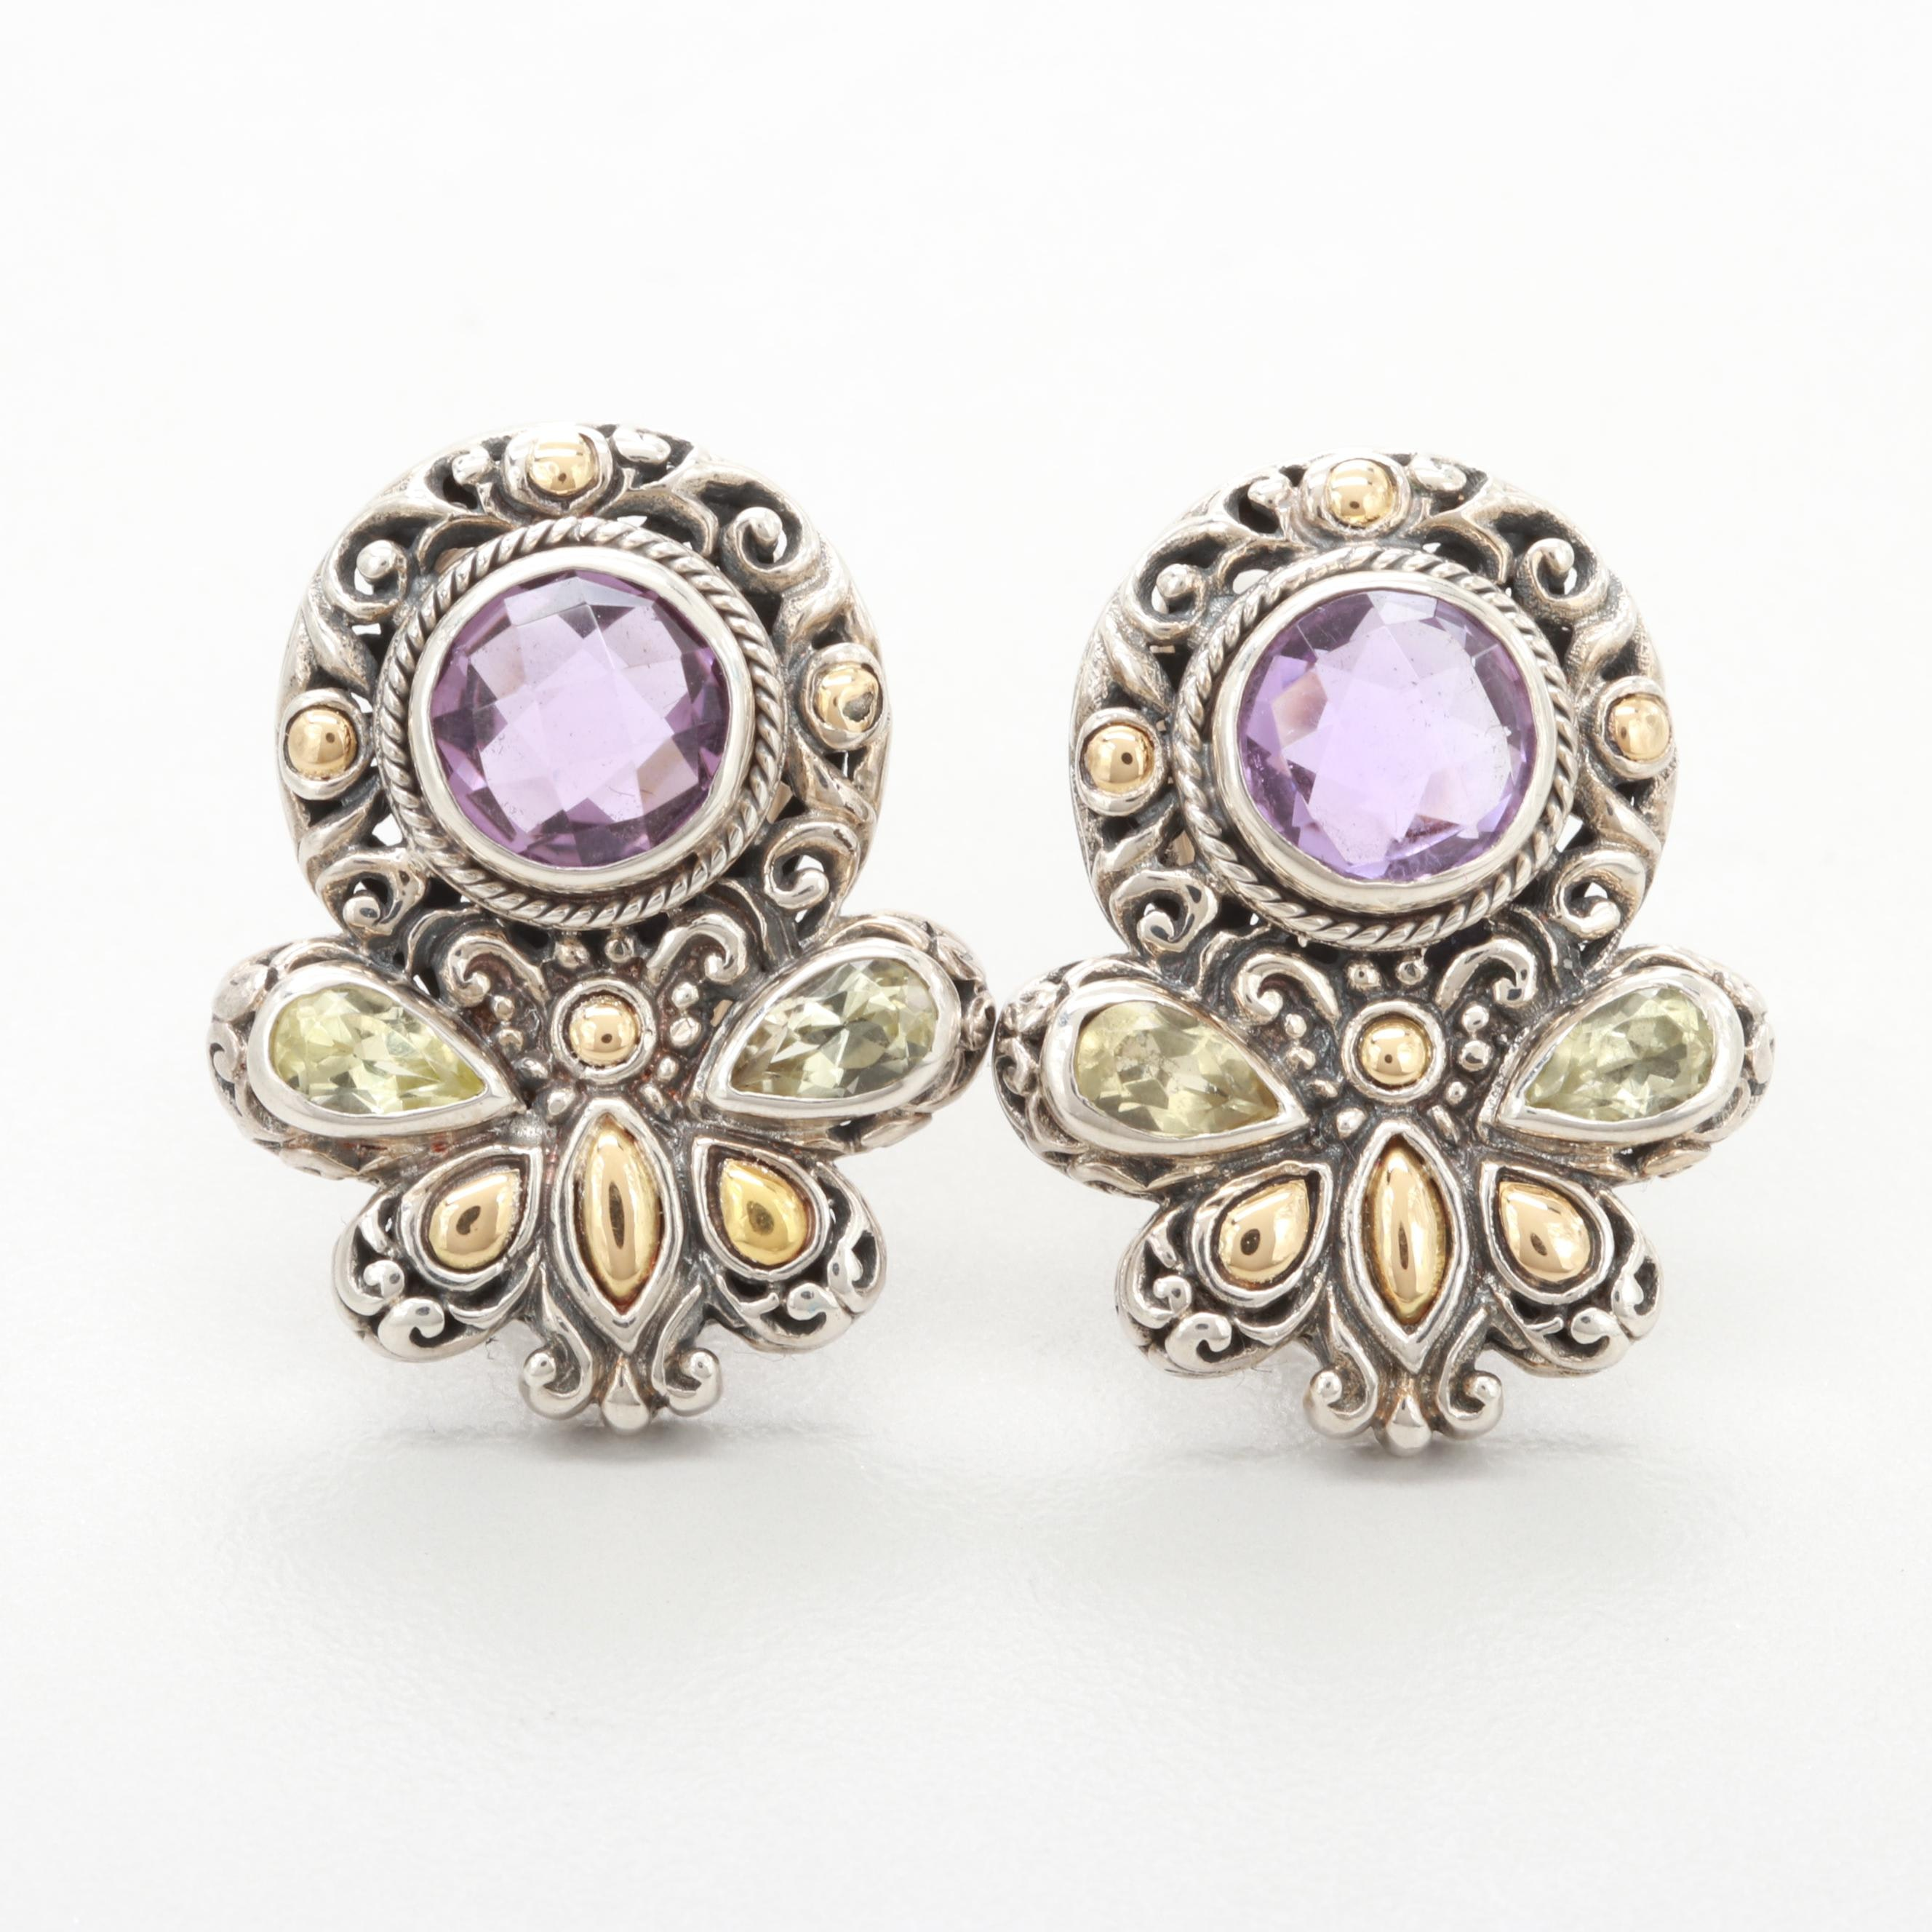 Robert Manse Sterling Amethyst and Praseoline Earrings with 18K Gold Accents